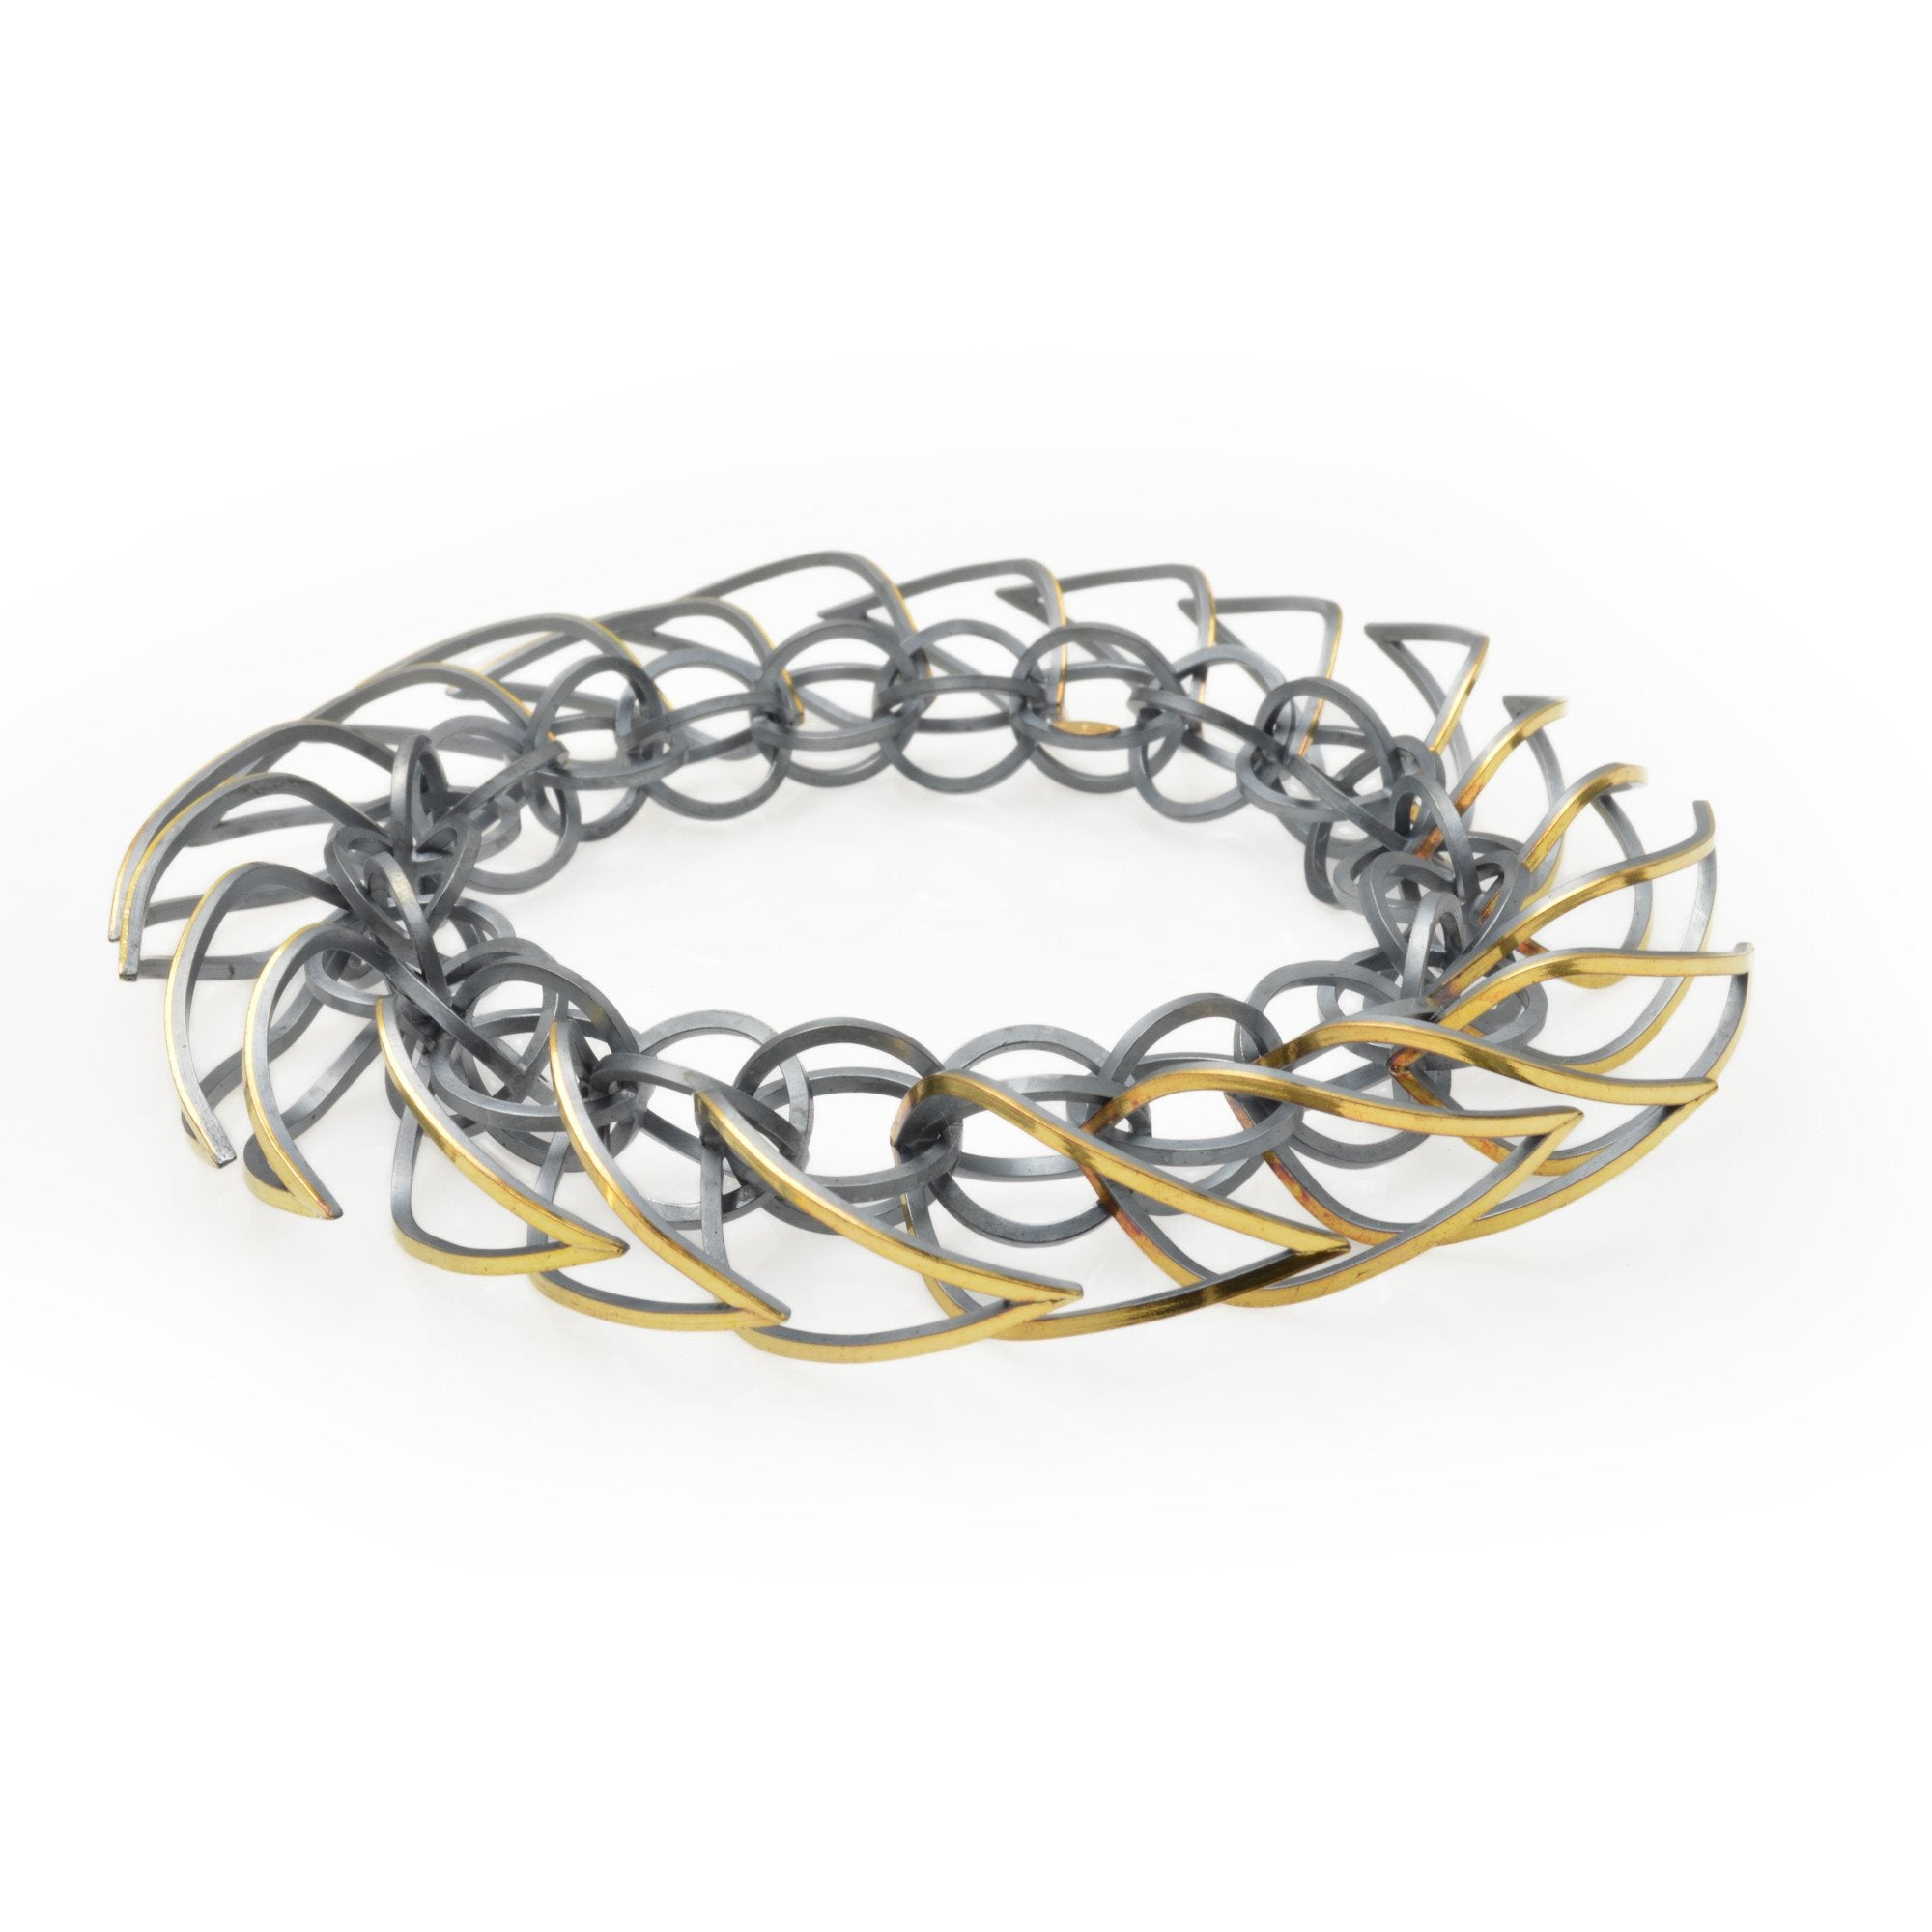 Tighra Bracelet Gold and Black